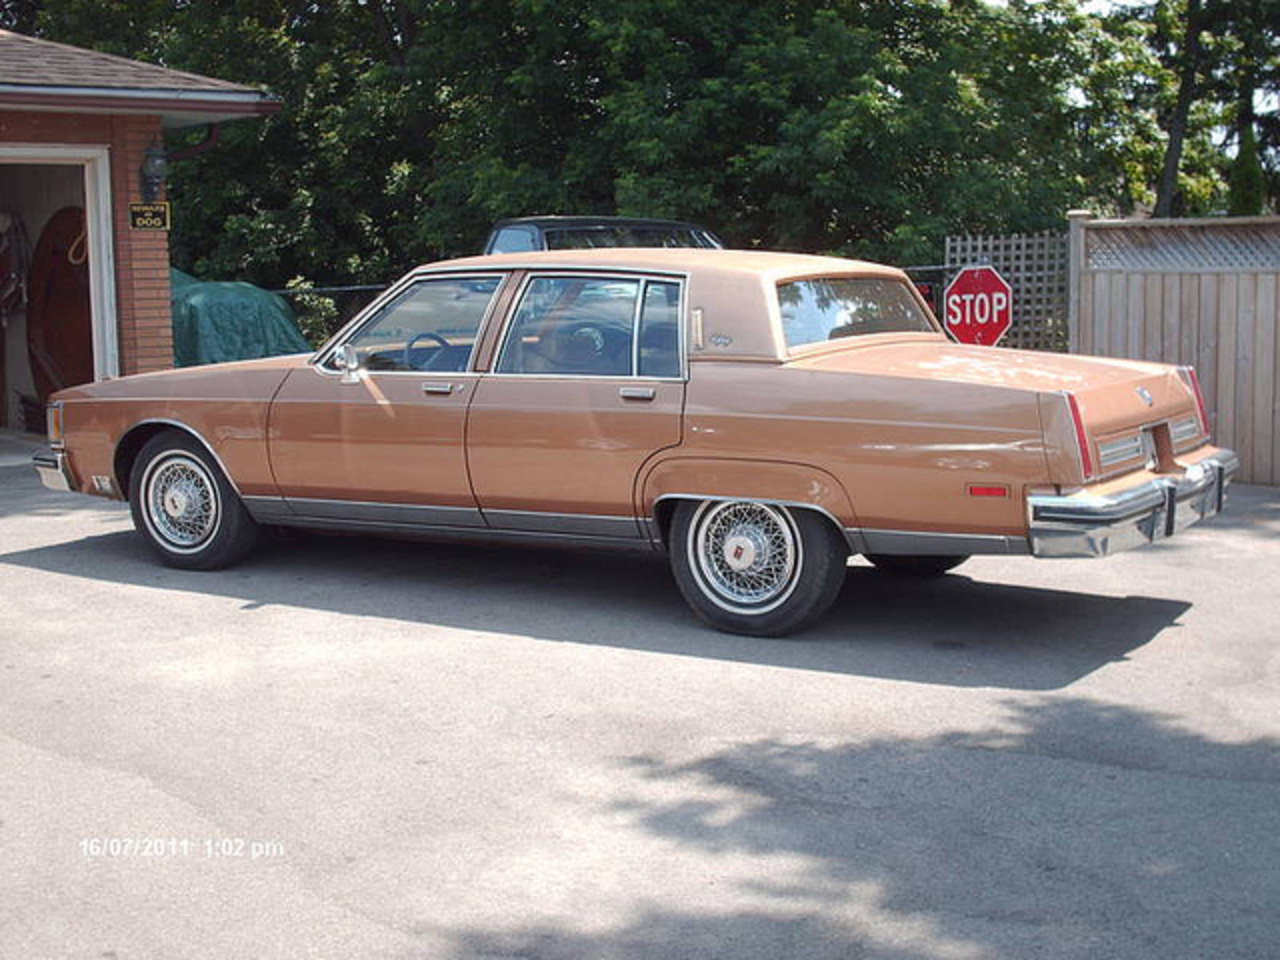 1980 Oldsmobile 98 Regency | Flickr - Photo Sharing!